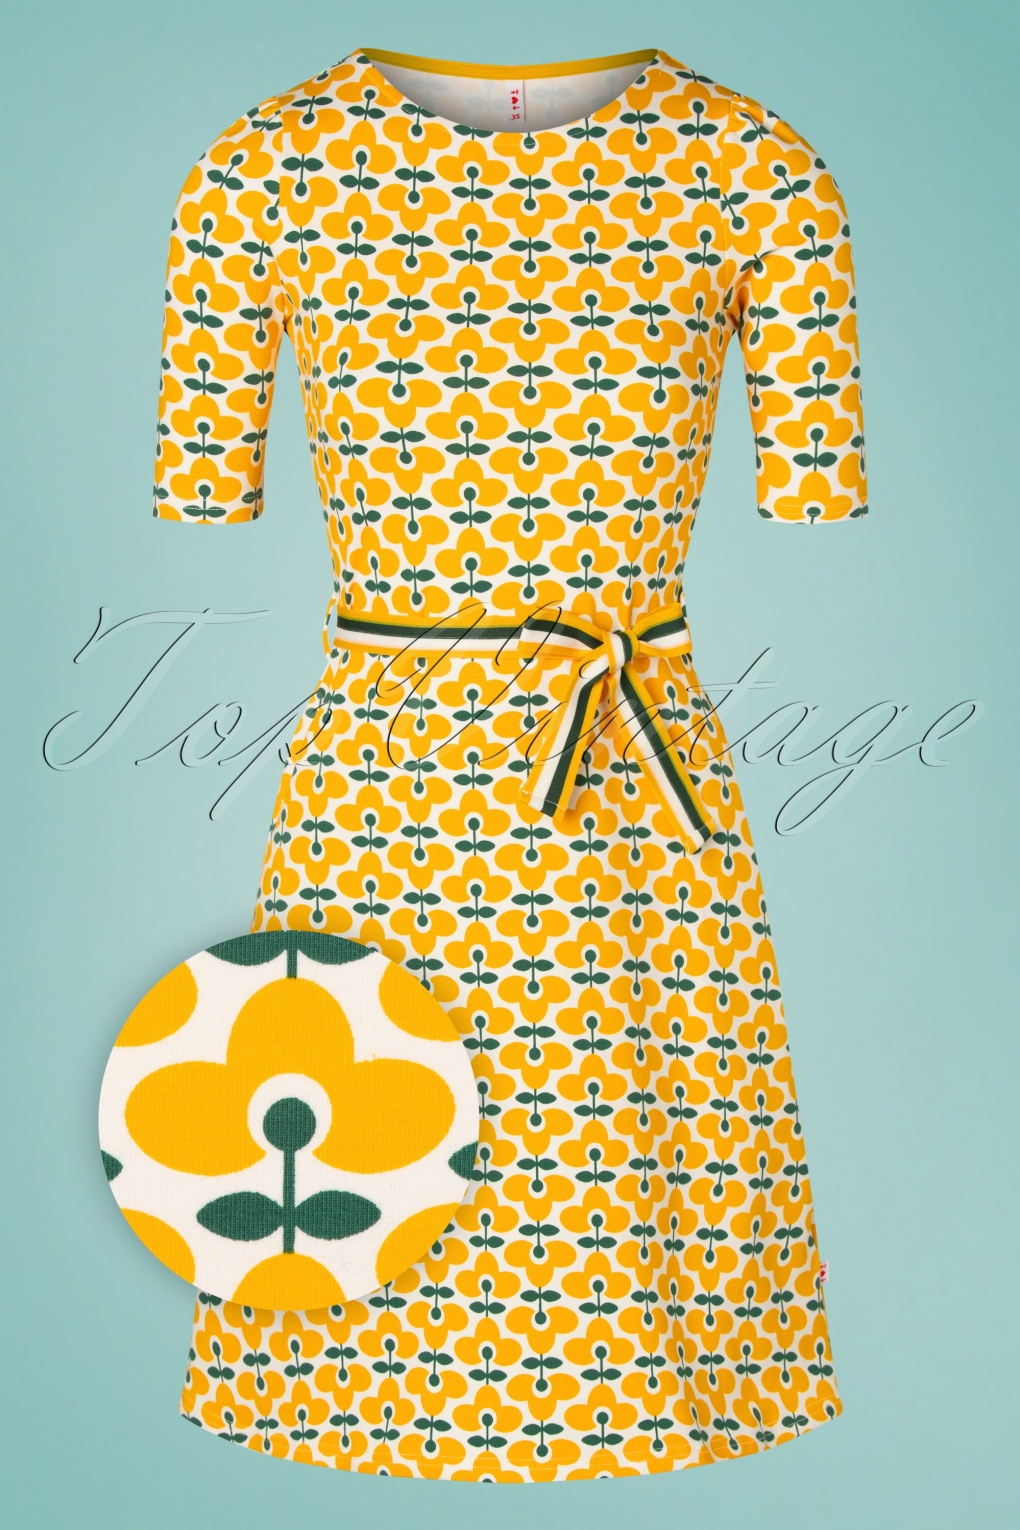 60s Dresses | 1960s Dresses Mod, Mini, Hippie 60s So Frei Dress in Real Retro £24.95 AT vintagedancer.com